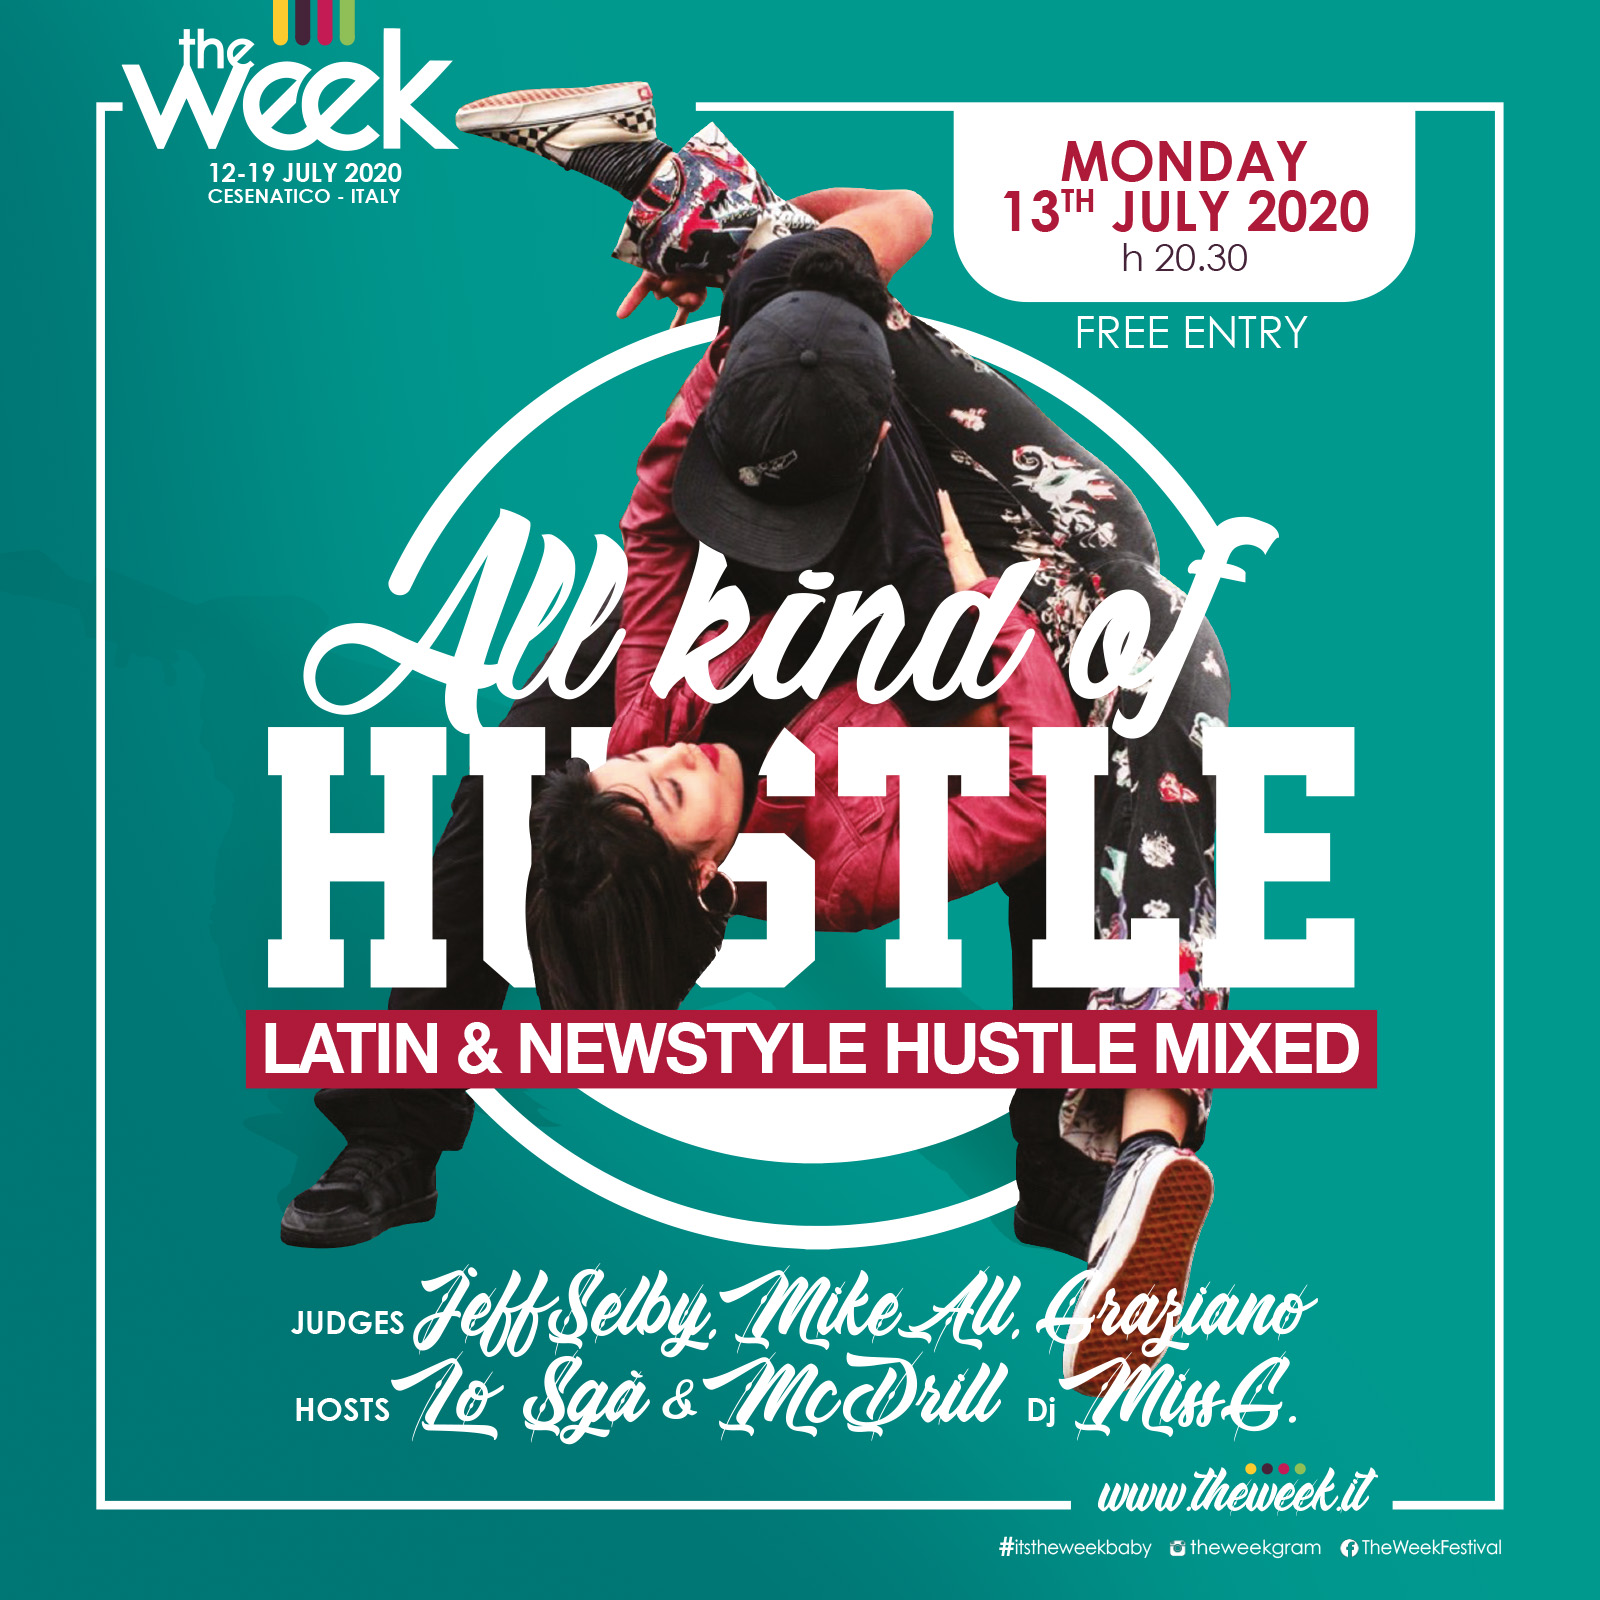 All Kind Of Hustle NSH Latin NewStyle Hustle The Week The WeeKidz Street Dance Summer Camp Cesenatico Italy Workshop Stage Hip Hop Festival